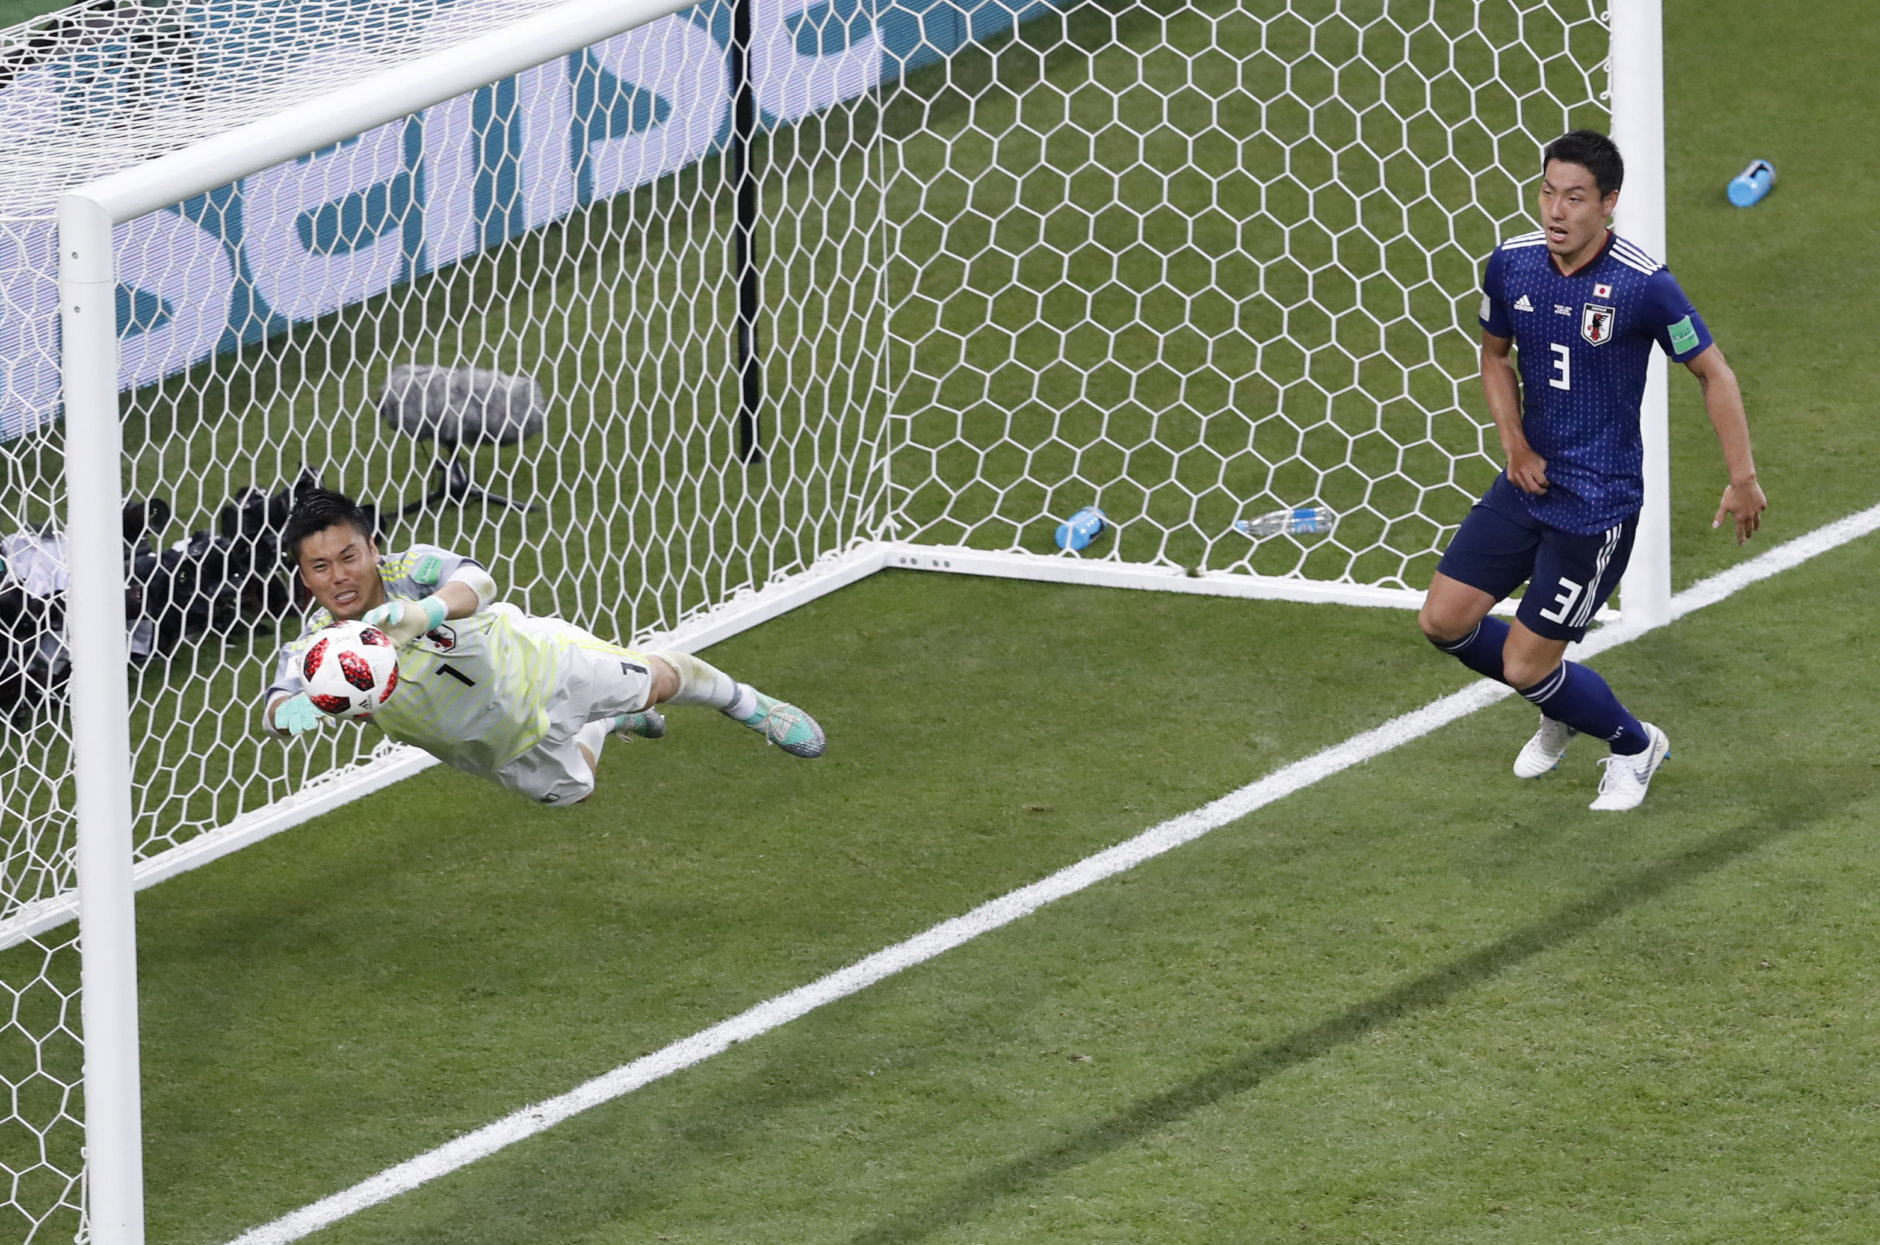 Japan goalkeeper Eiji Kawashima, left, saves a ball during the round of 16 match between Belgium and Japan at the 2018 soccer World Cup in the Rostov Arena, in Rostov-on-Don, Russia, Monday, July 2, 2018. (AP Photo/Hassan Ammar)